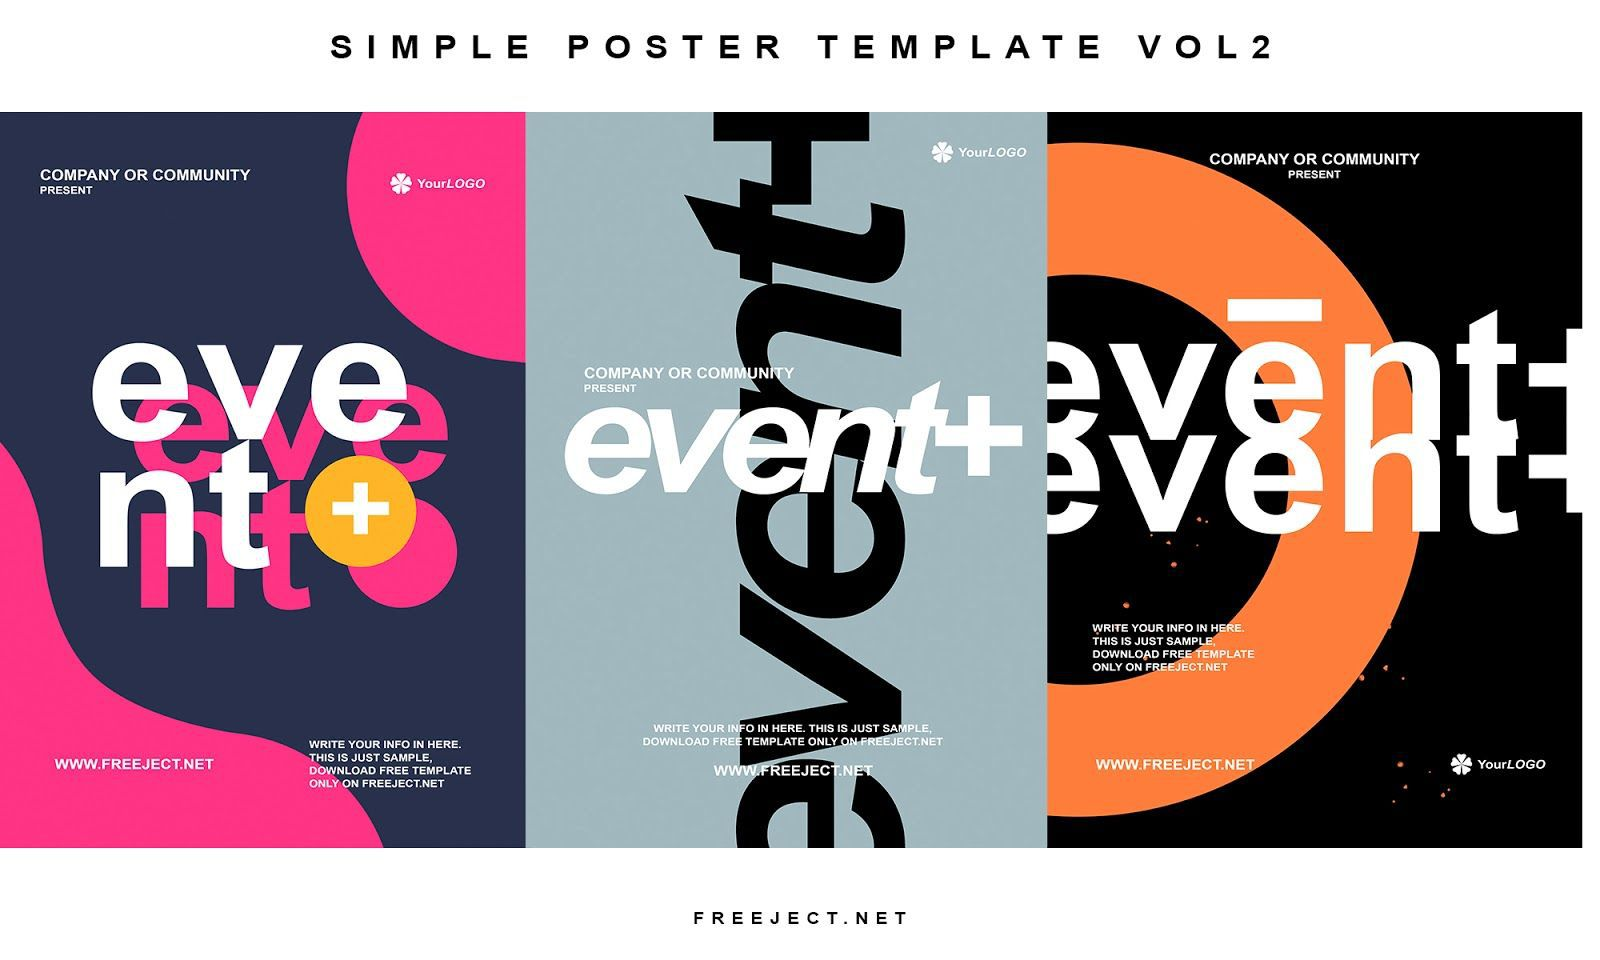 001 Dreaded Free Photoshop Poster Design Template High Resolution Full